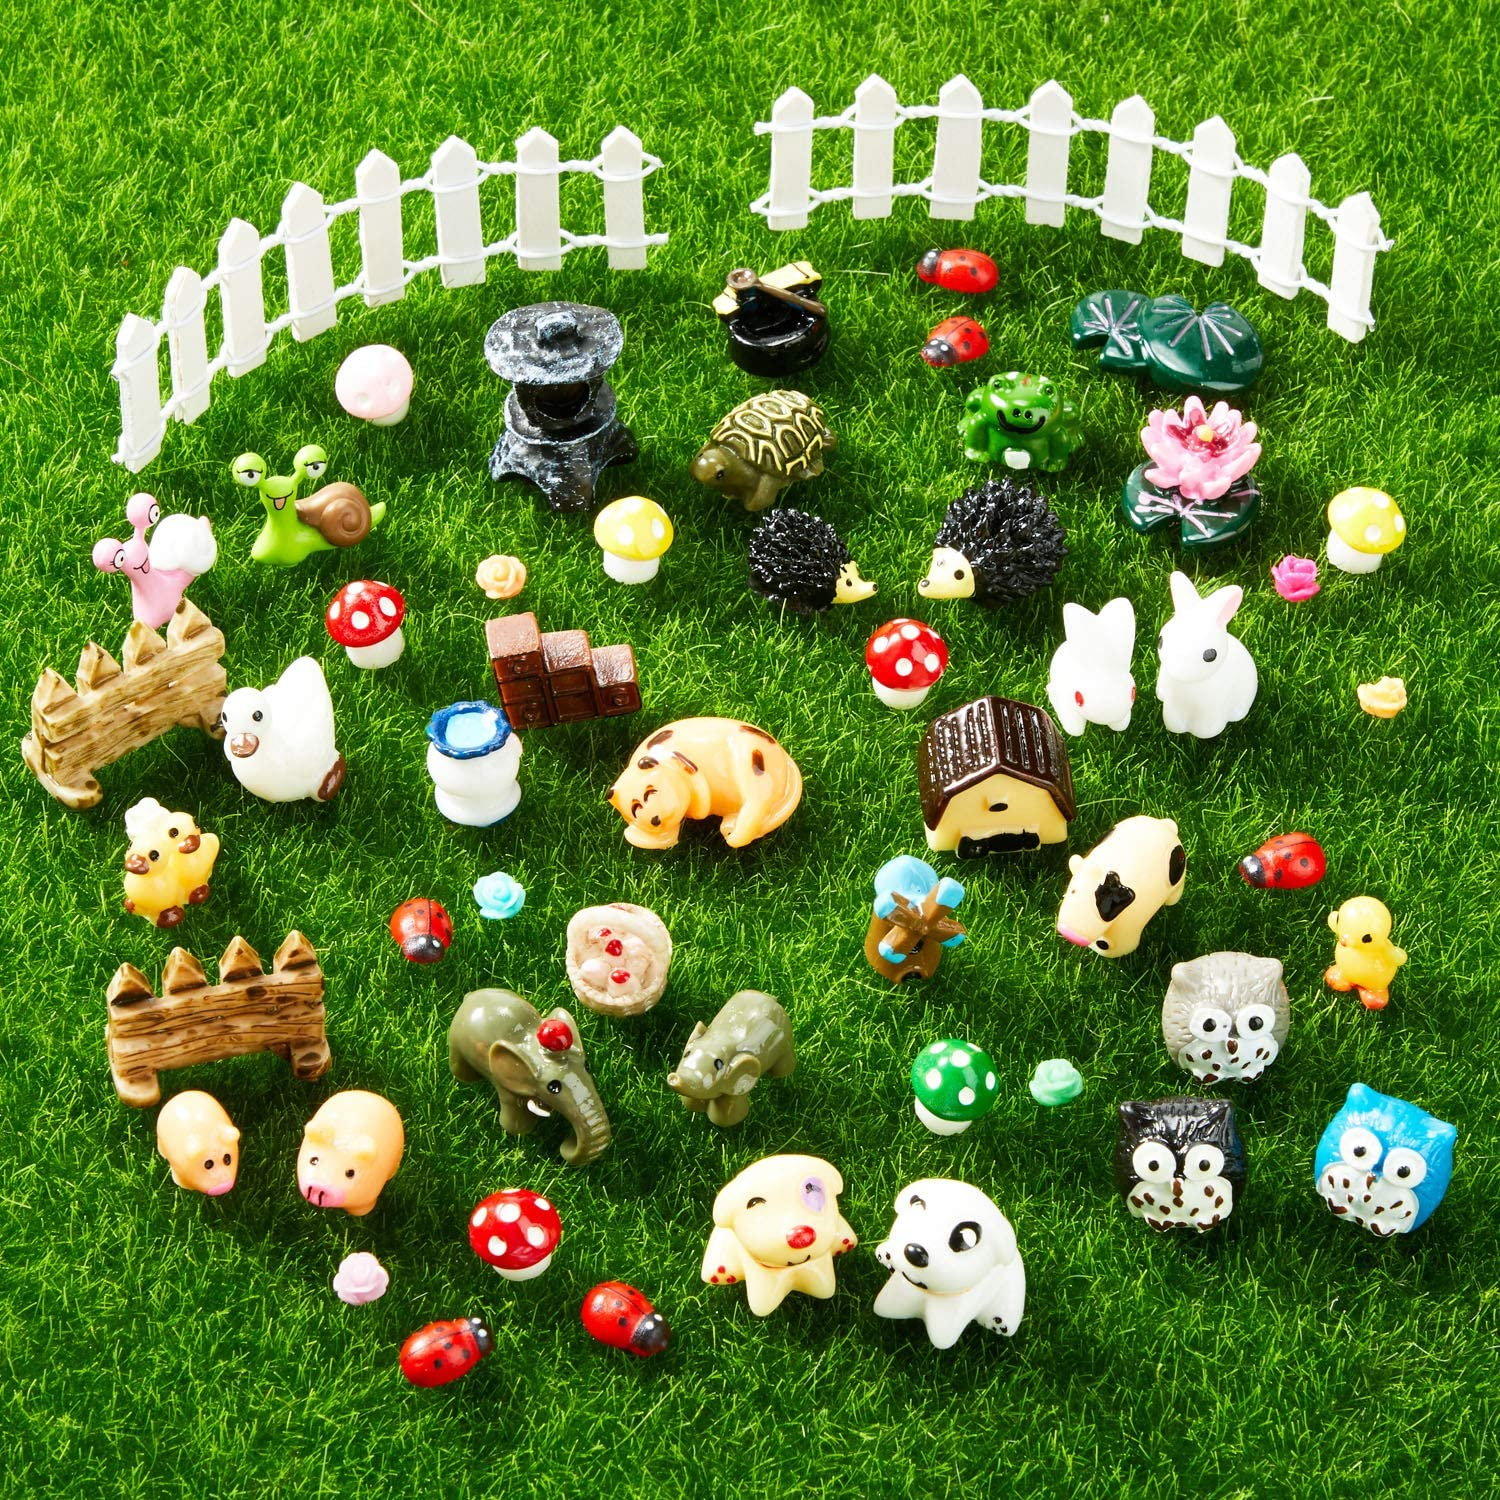 90 Pieces Mini Animals Miniature Ornament Kit Fairy Animal Figurines Garden Animals Miniature Micro Landscape Accessories for DIY Dollhouse Plant Decoration, Snail, Tortoise, Owl, Puppy, Bunny, Duck